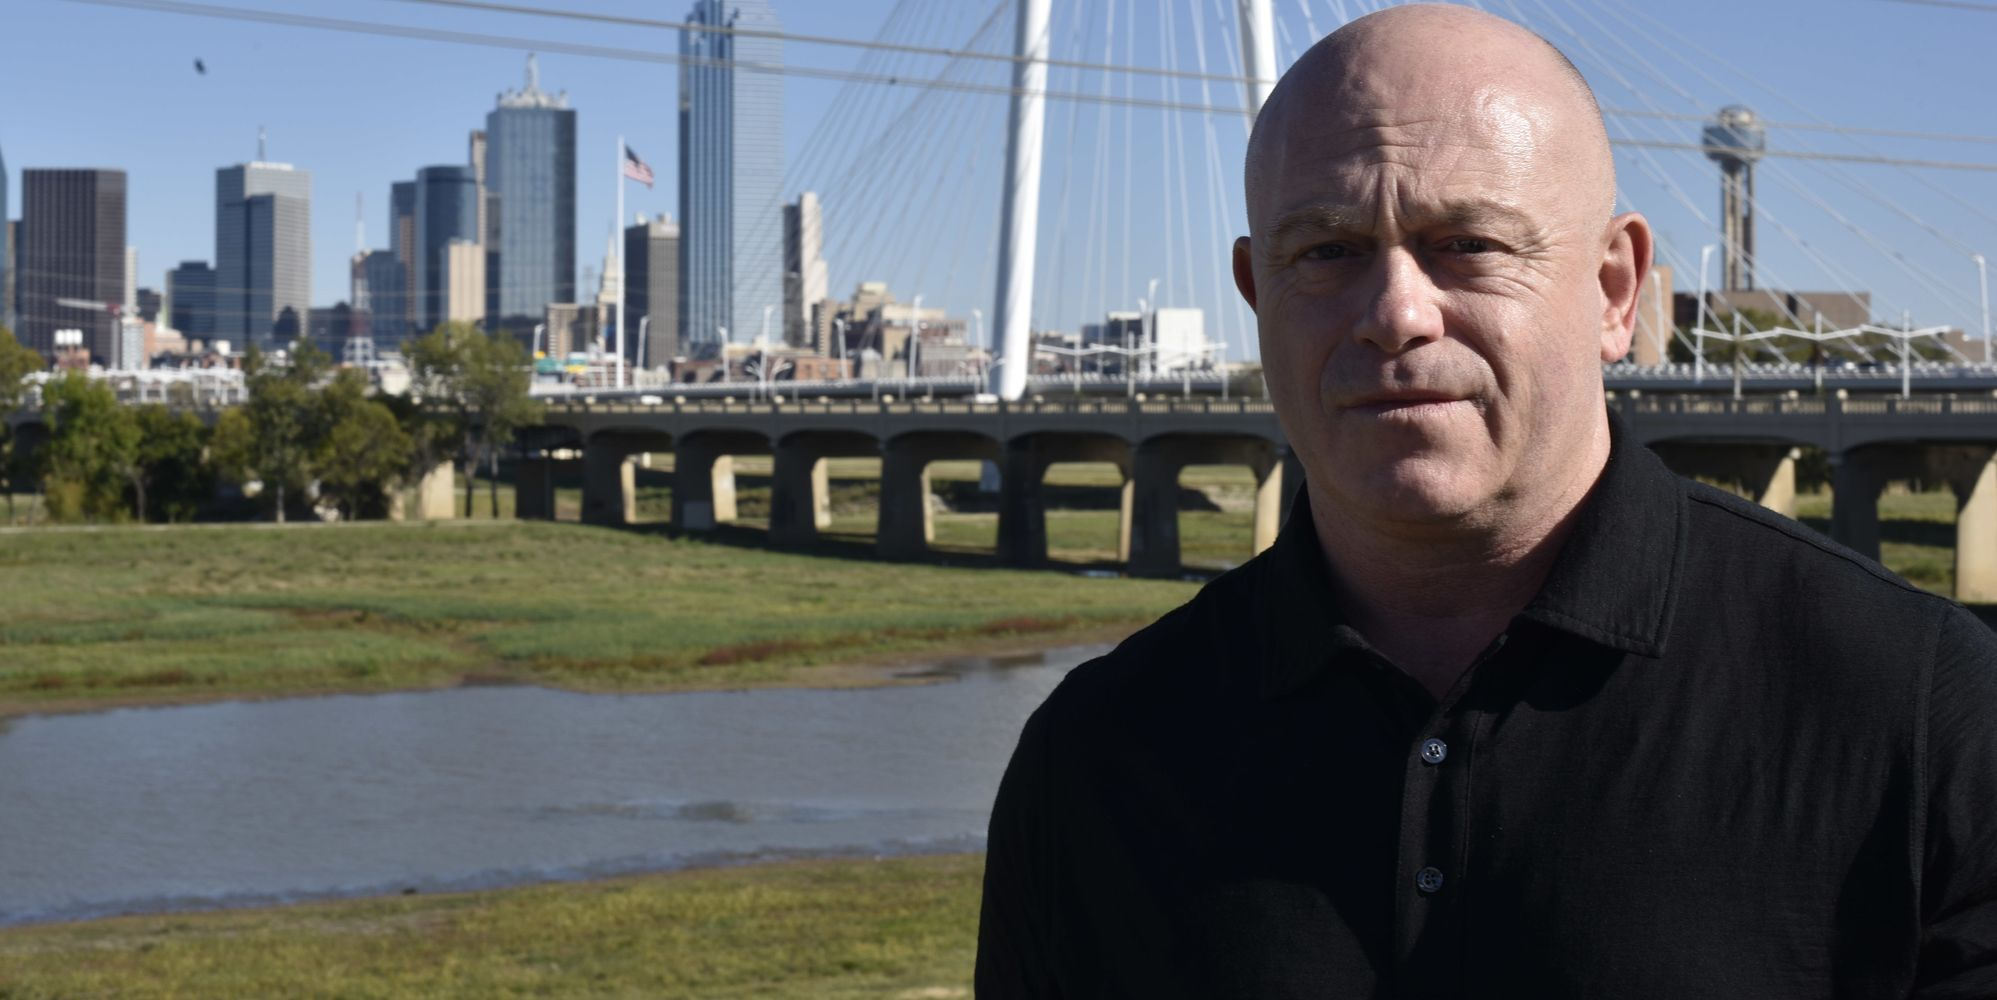 ross kemp reveals the uk issue he wants to make a. Black Bedroom Furniture Sets. Home Design Ideas